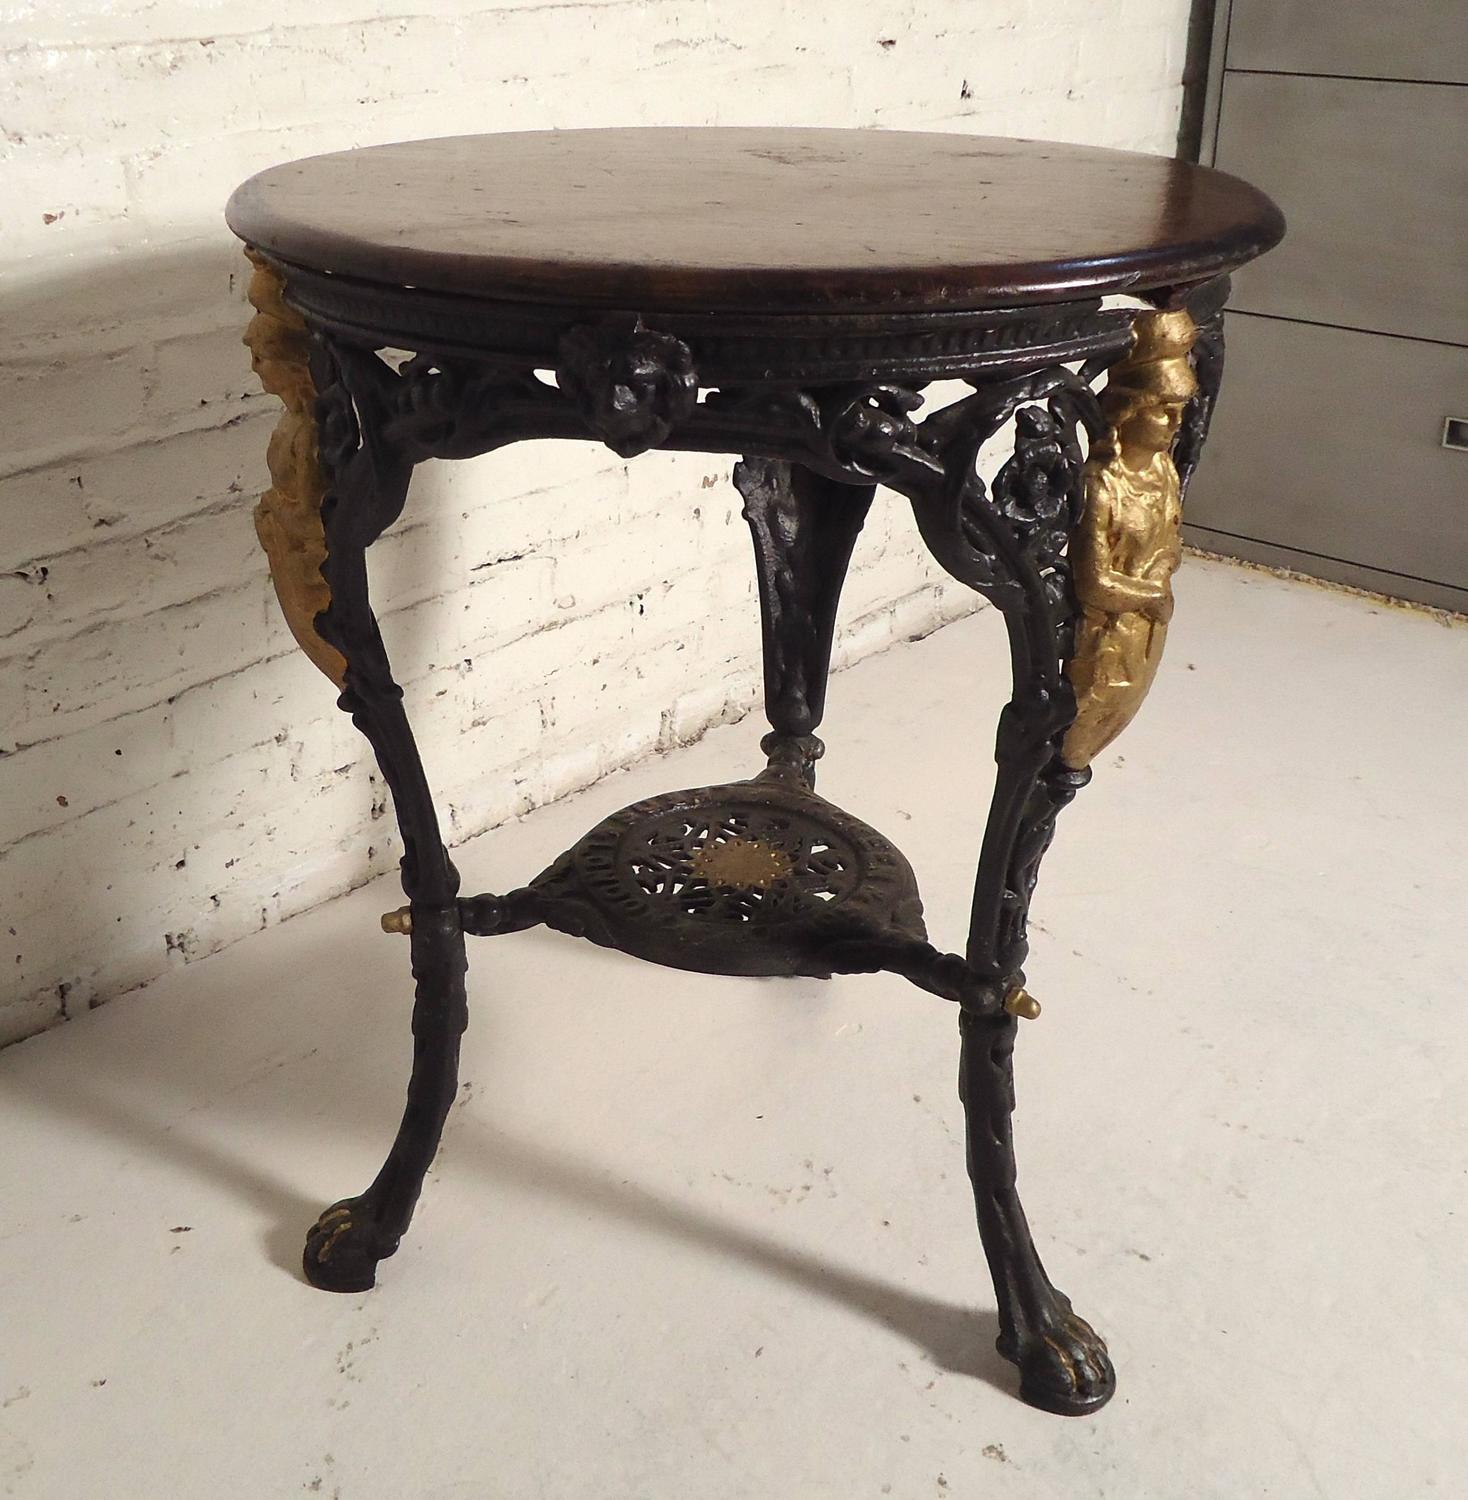 Bar Table And Chairs For Sale: Antique English Pub Table For Sale At 1stdibs